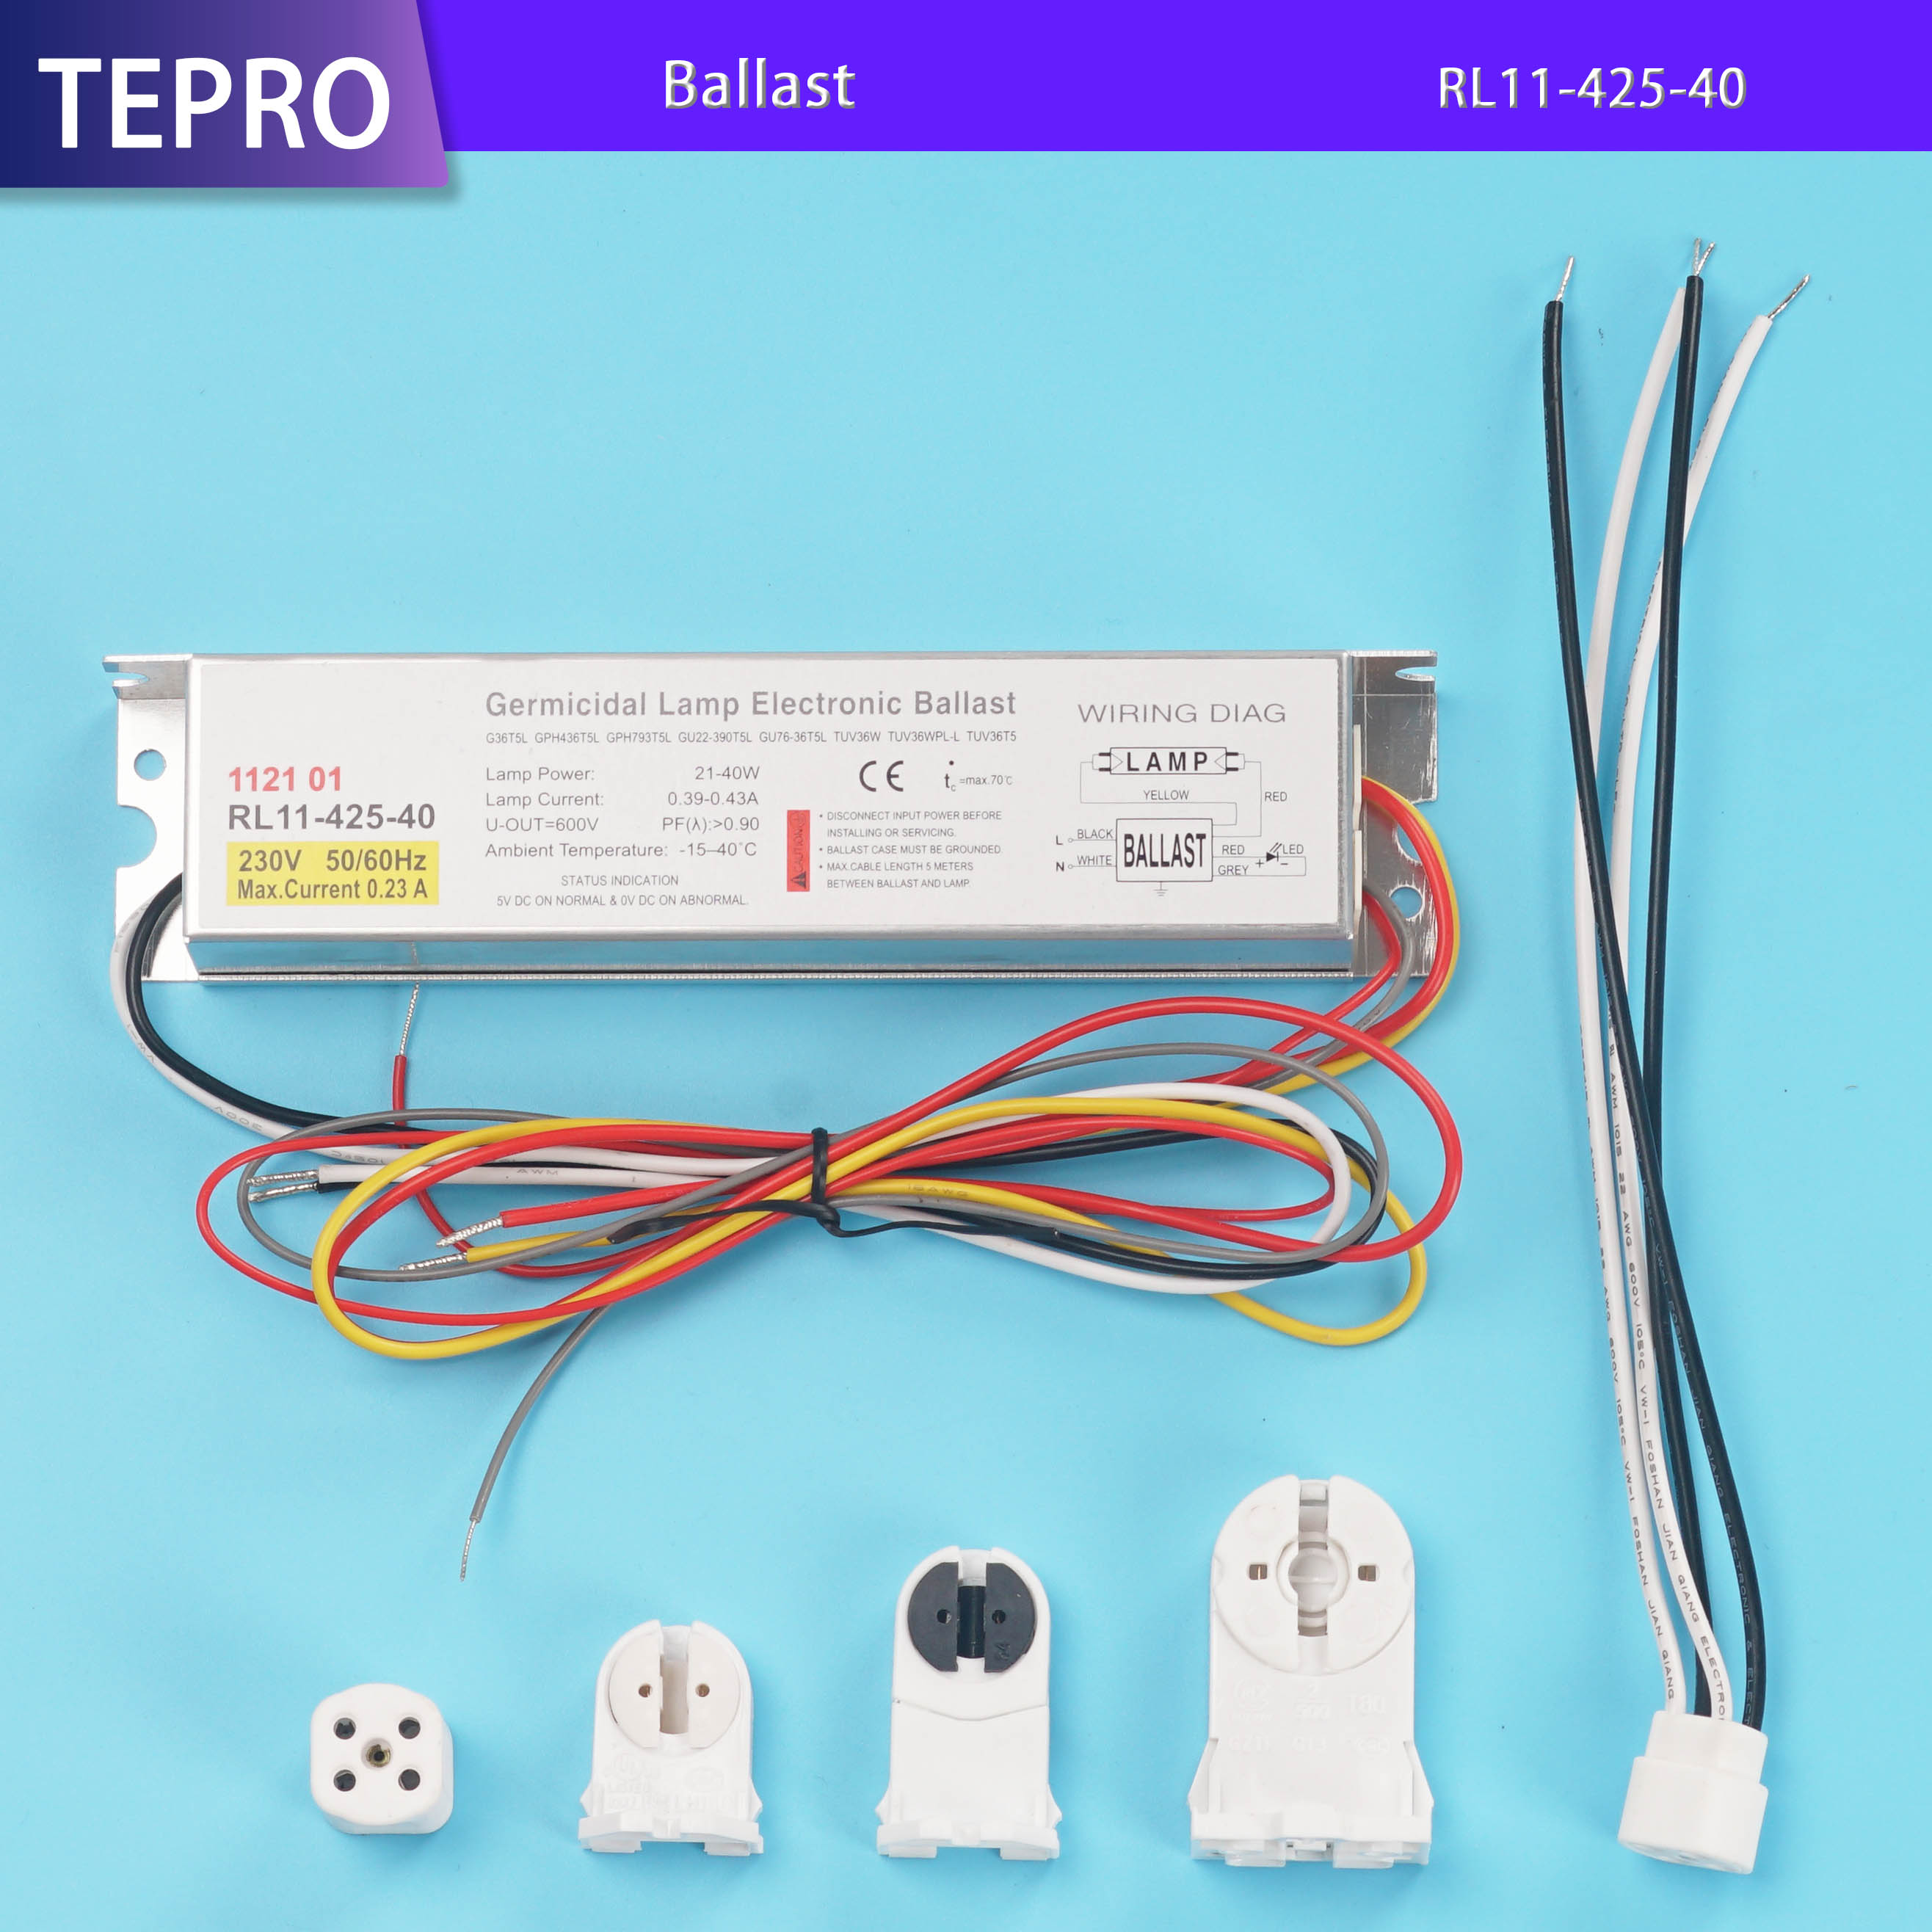 application-Tepro 8gpm uv light water purifier customized for aquarium-Tepro-img